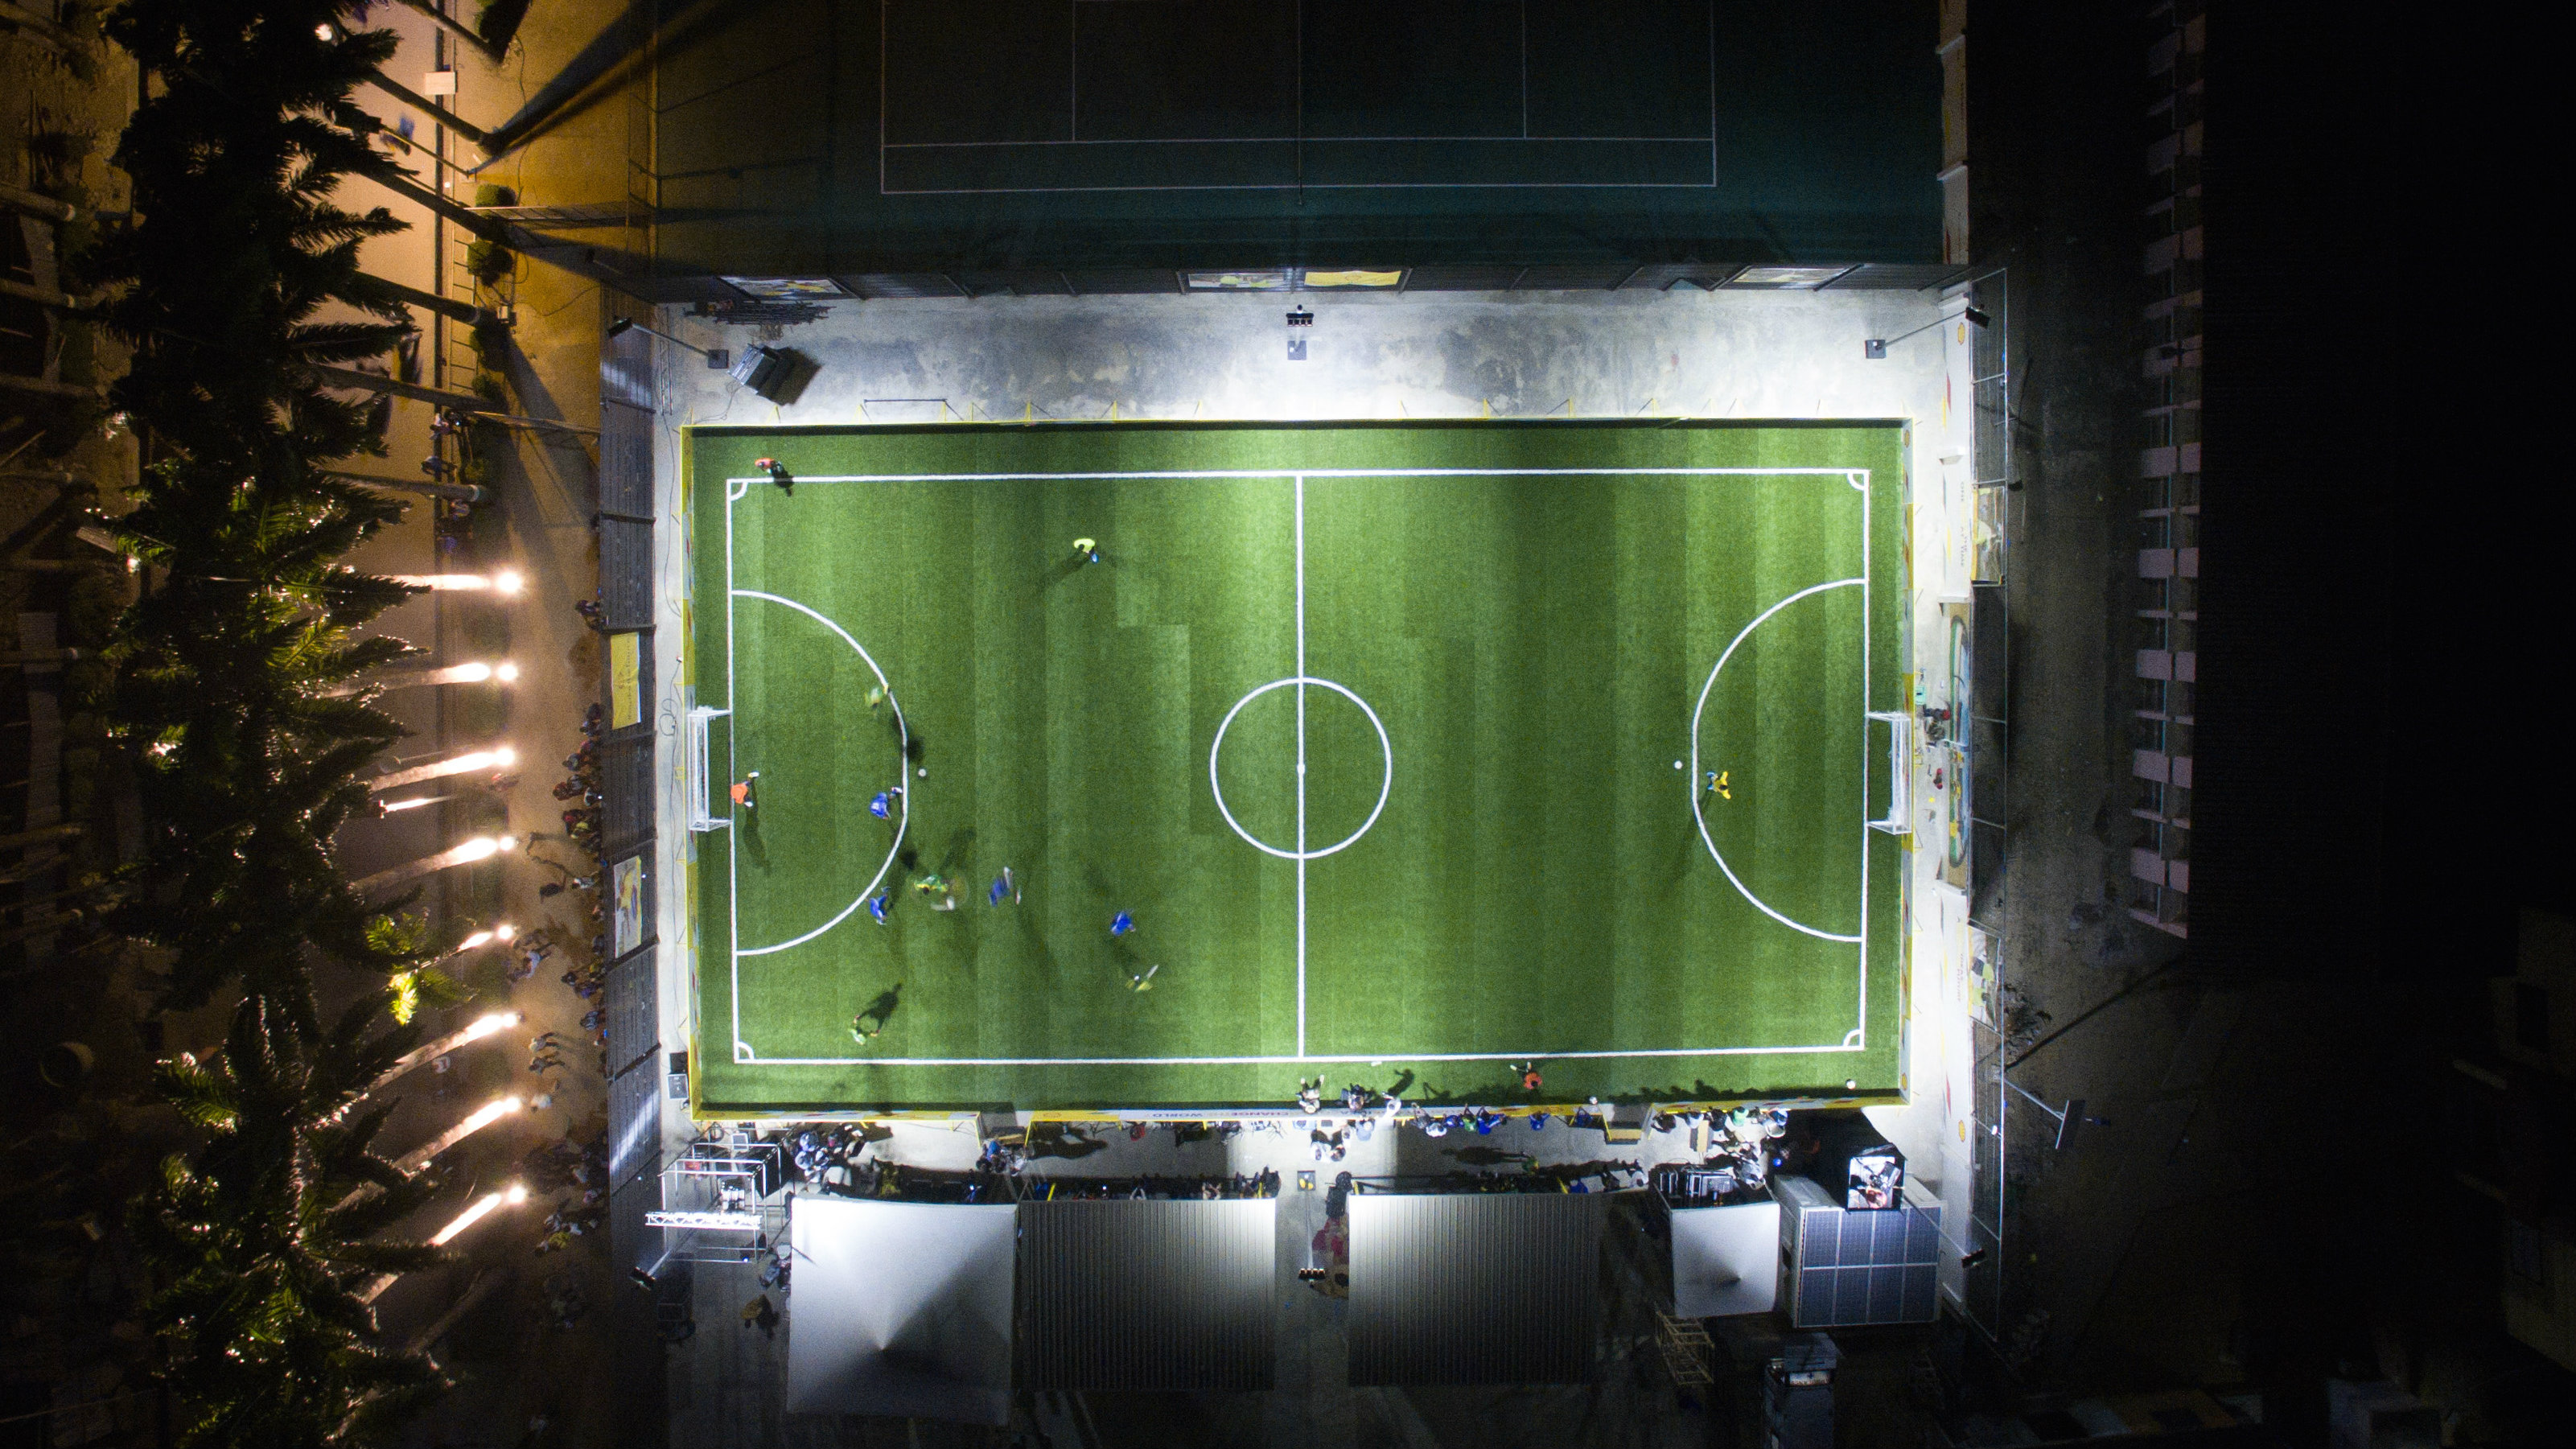 A soccer pitch in Lagos, Nigeria powered by Pavegen technology